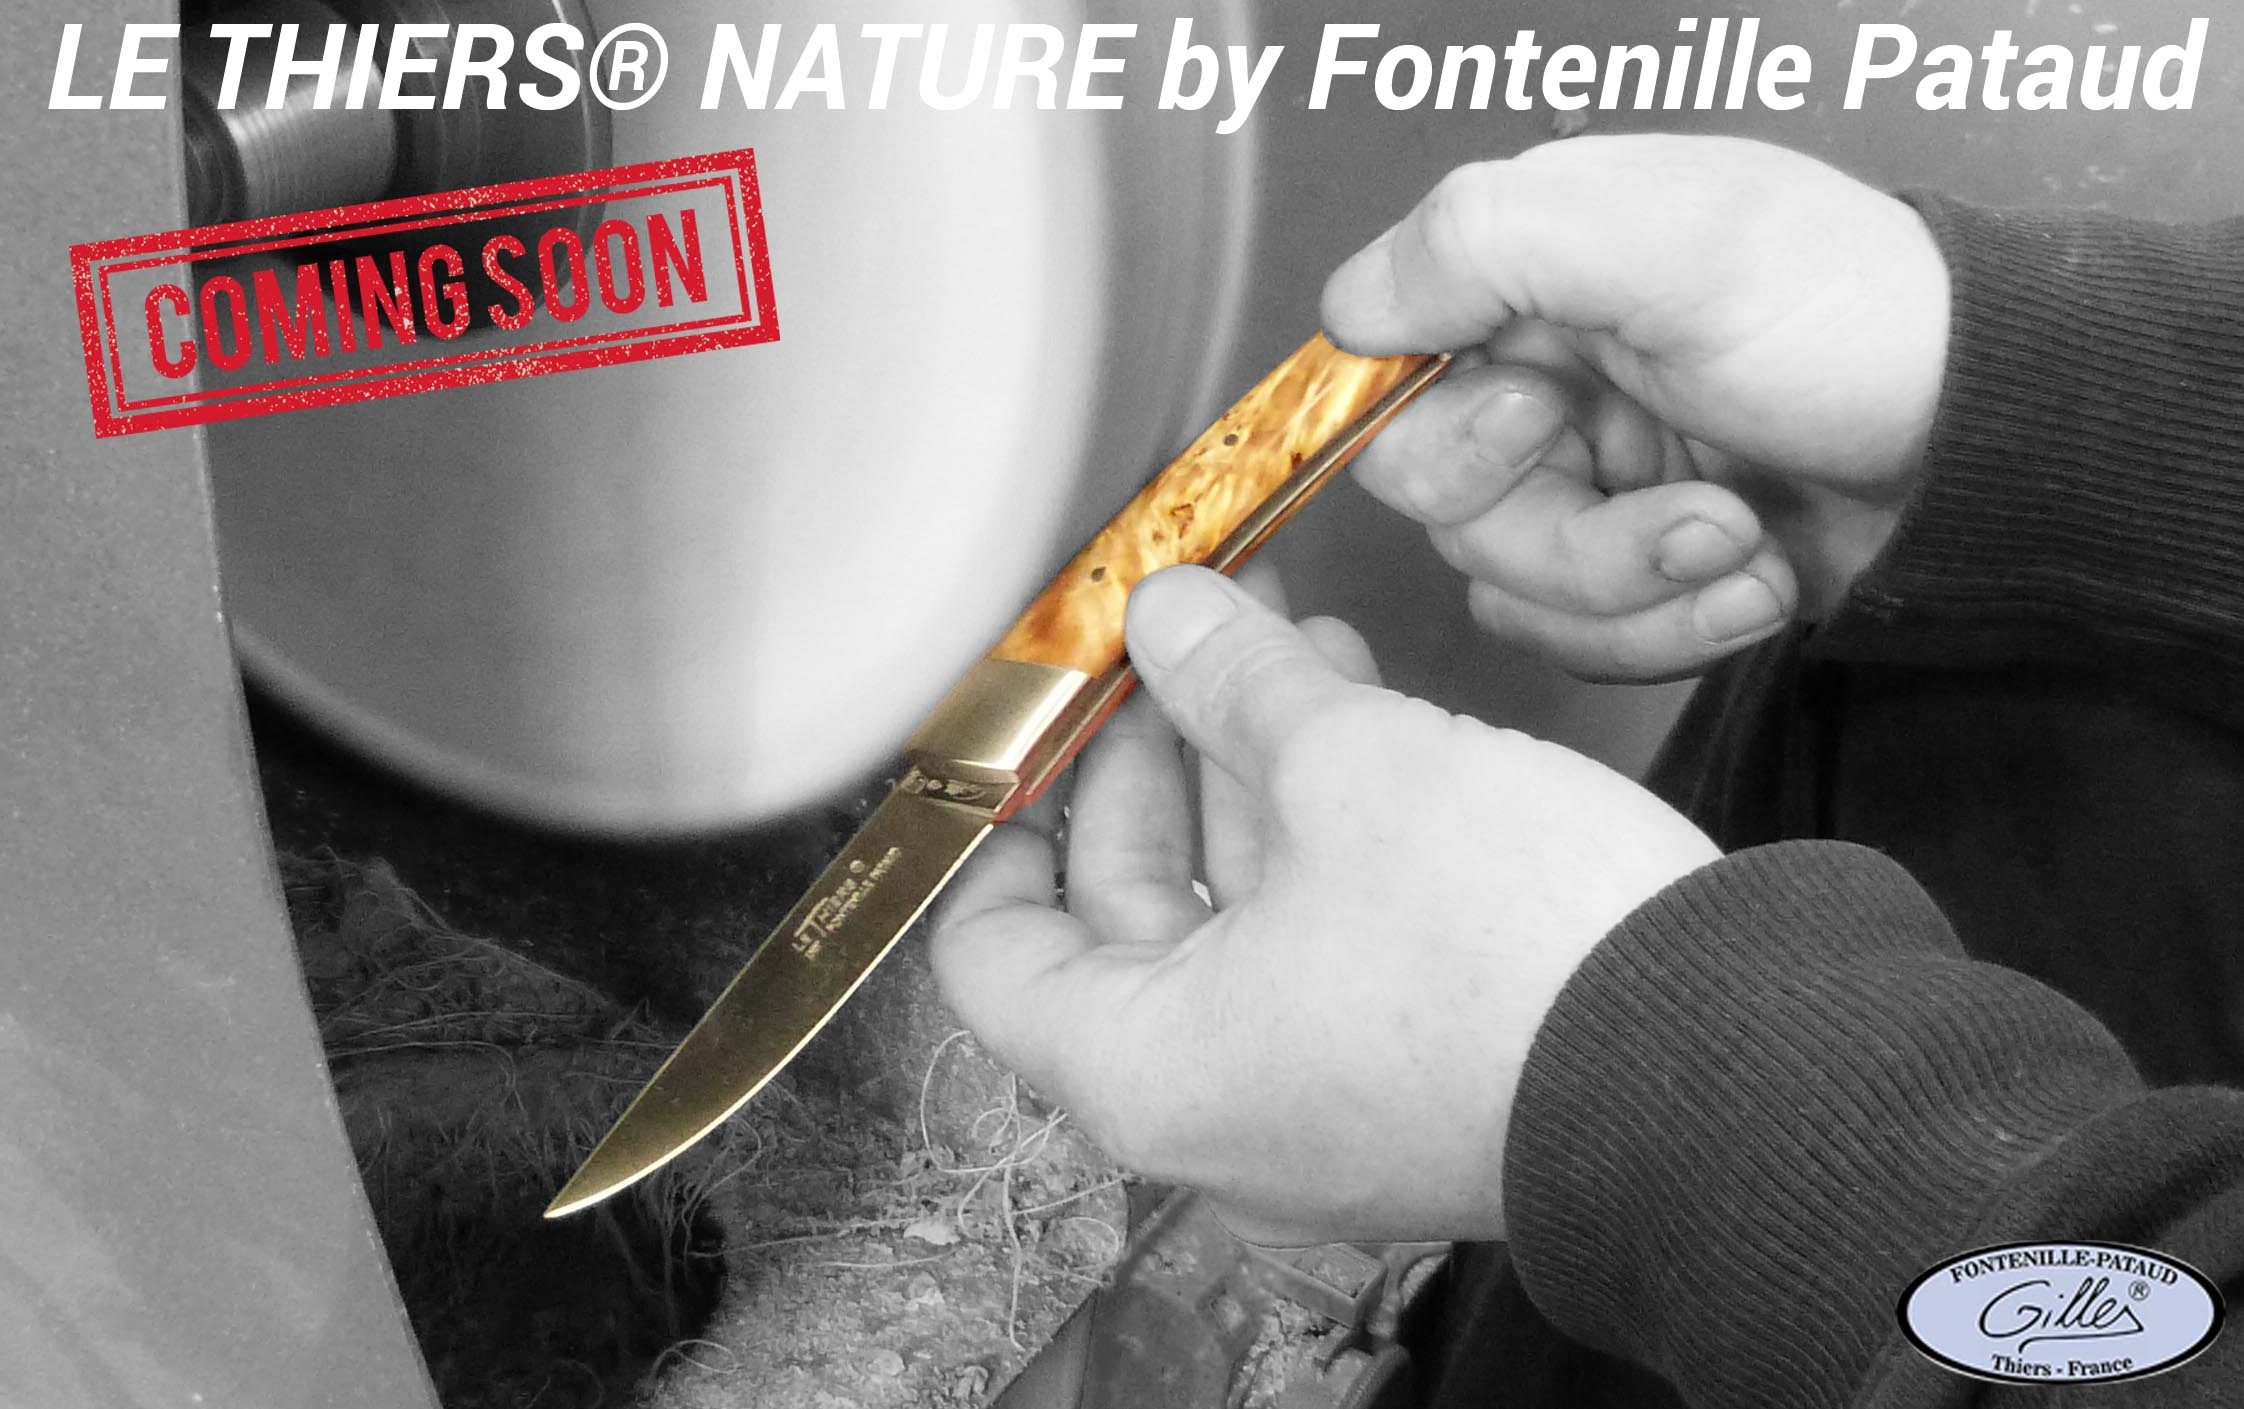 New folding knife by Fontenille Pataud